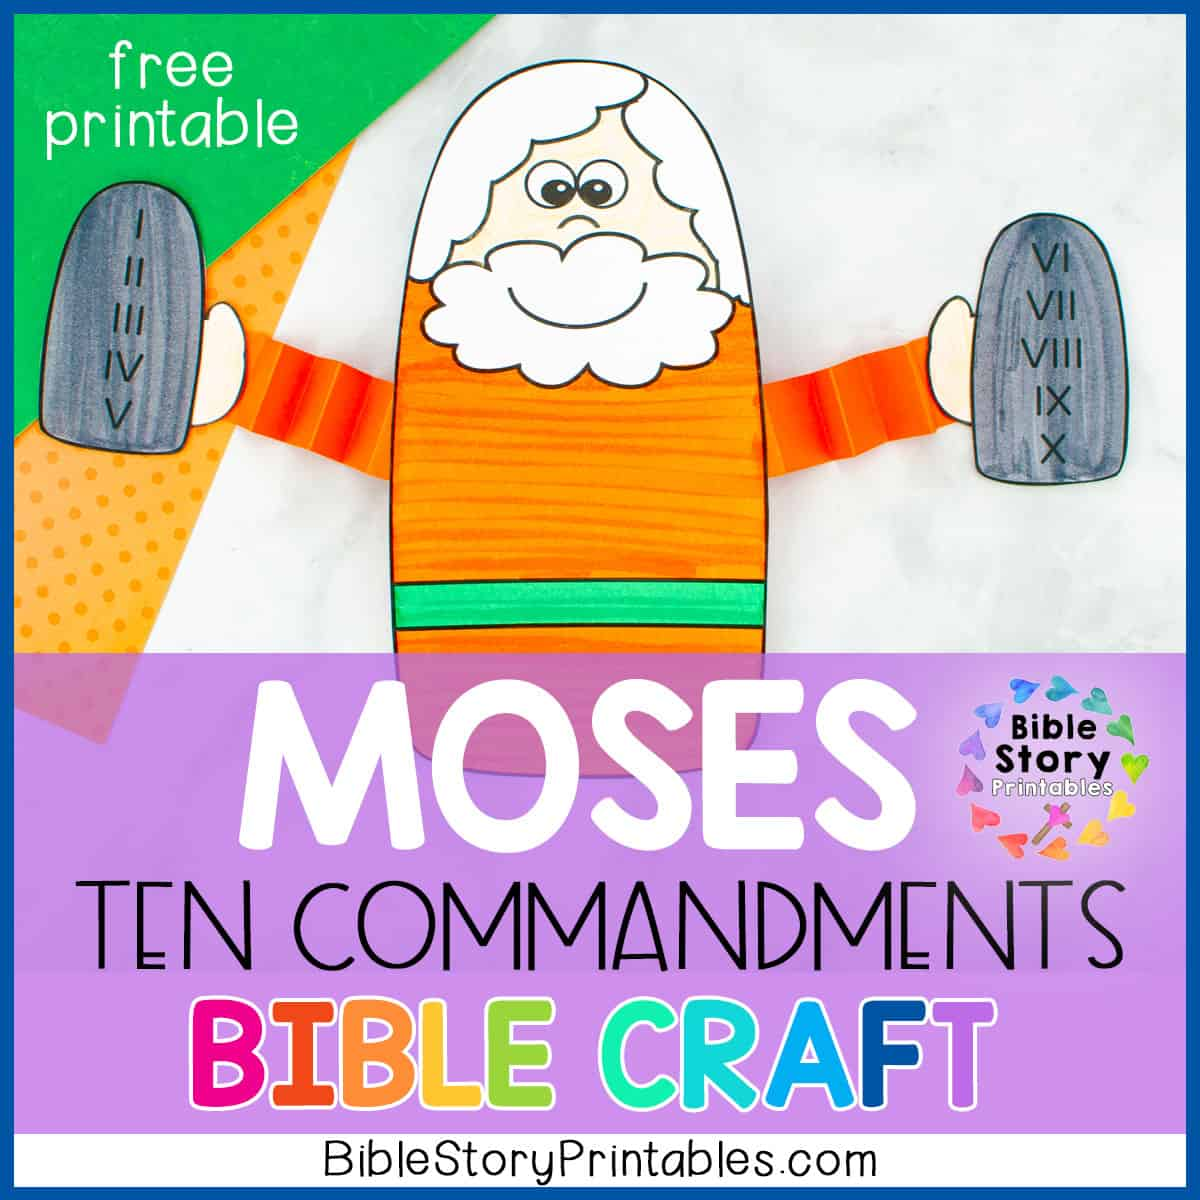 Ten Commandments Bible Craft